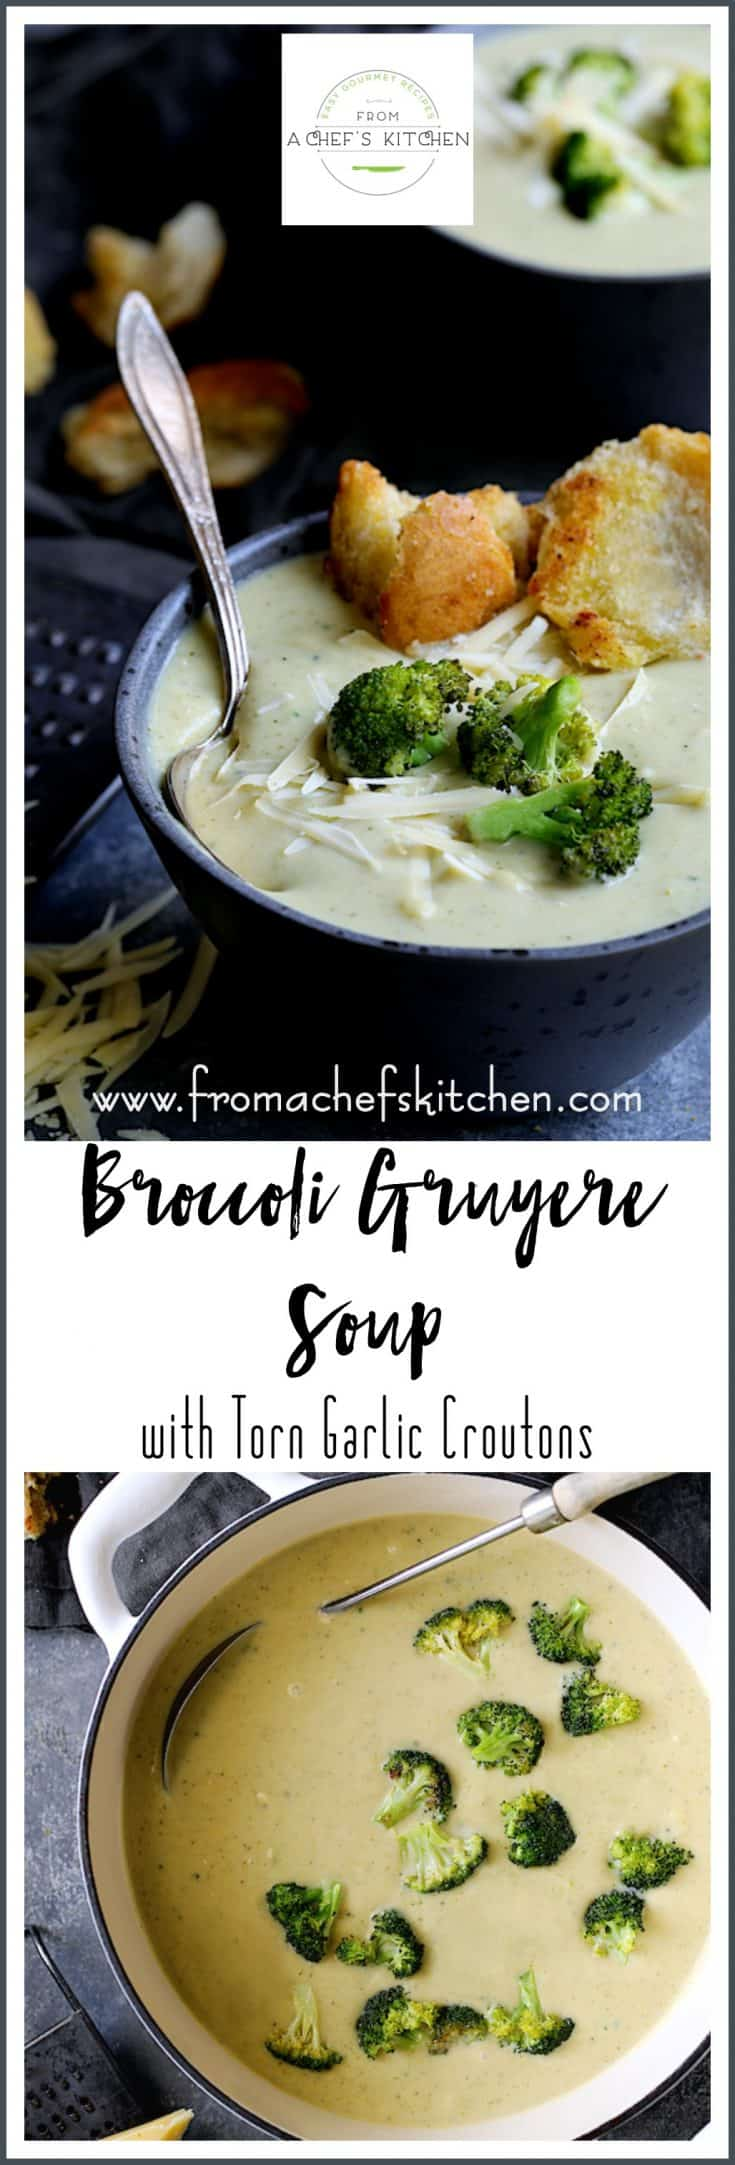 Broccoli Gruyere Soup is an upscale twist on classic broccoli cheese soup that's elegant enough to serve at your next dinner party. Torn Garlic Croutons are an easy way to add a crunchy factor to this beautiful, silky smooth soup. #broccoli #broccolisoup #vegetable #vegetablesoup #croutons #soup